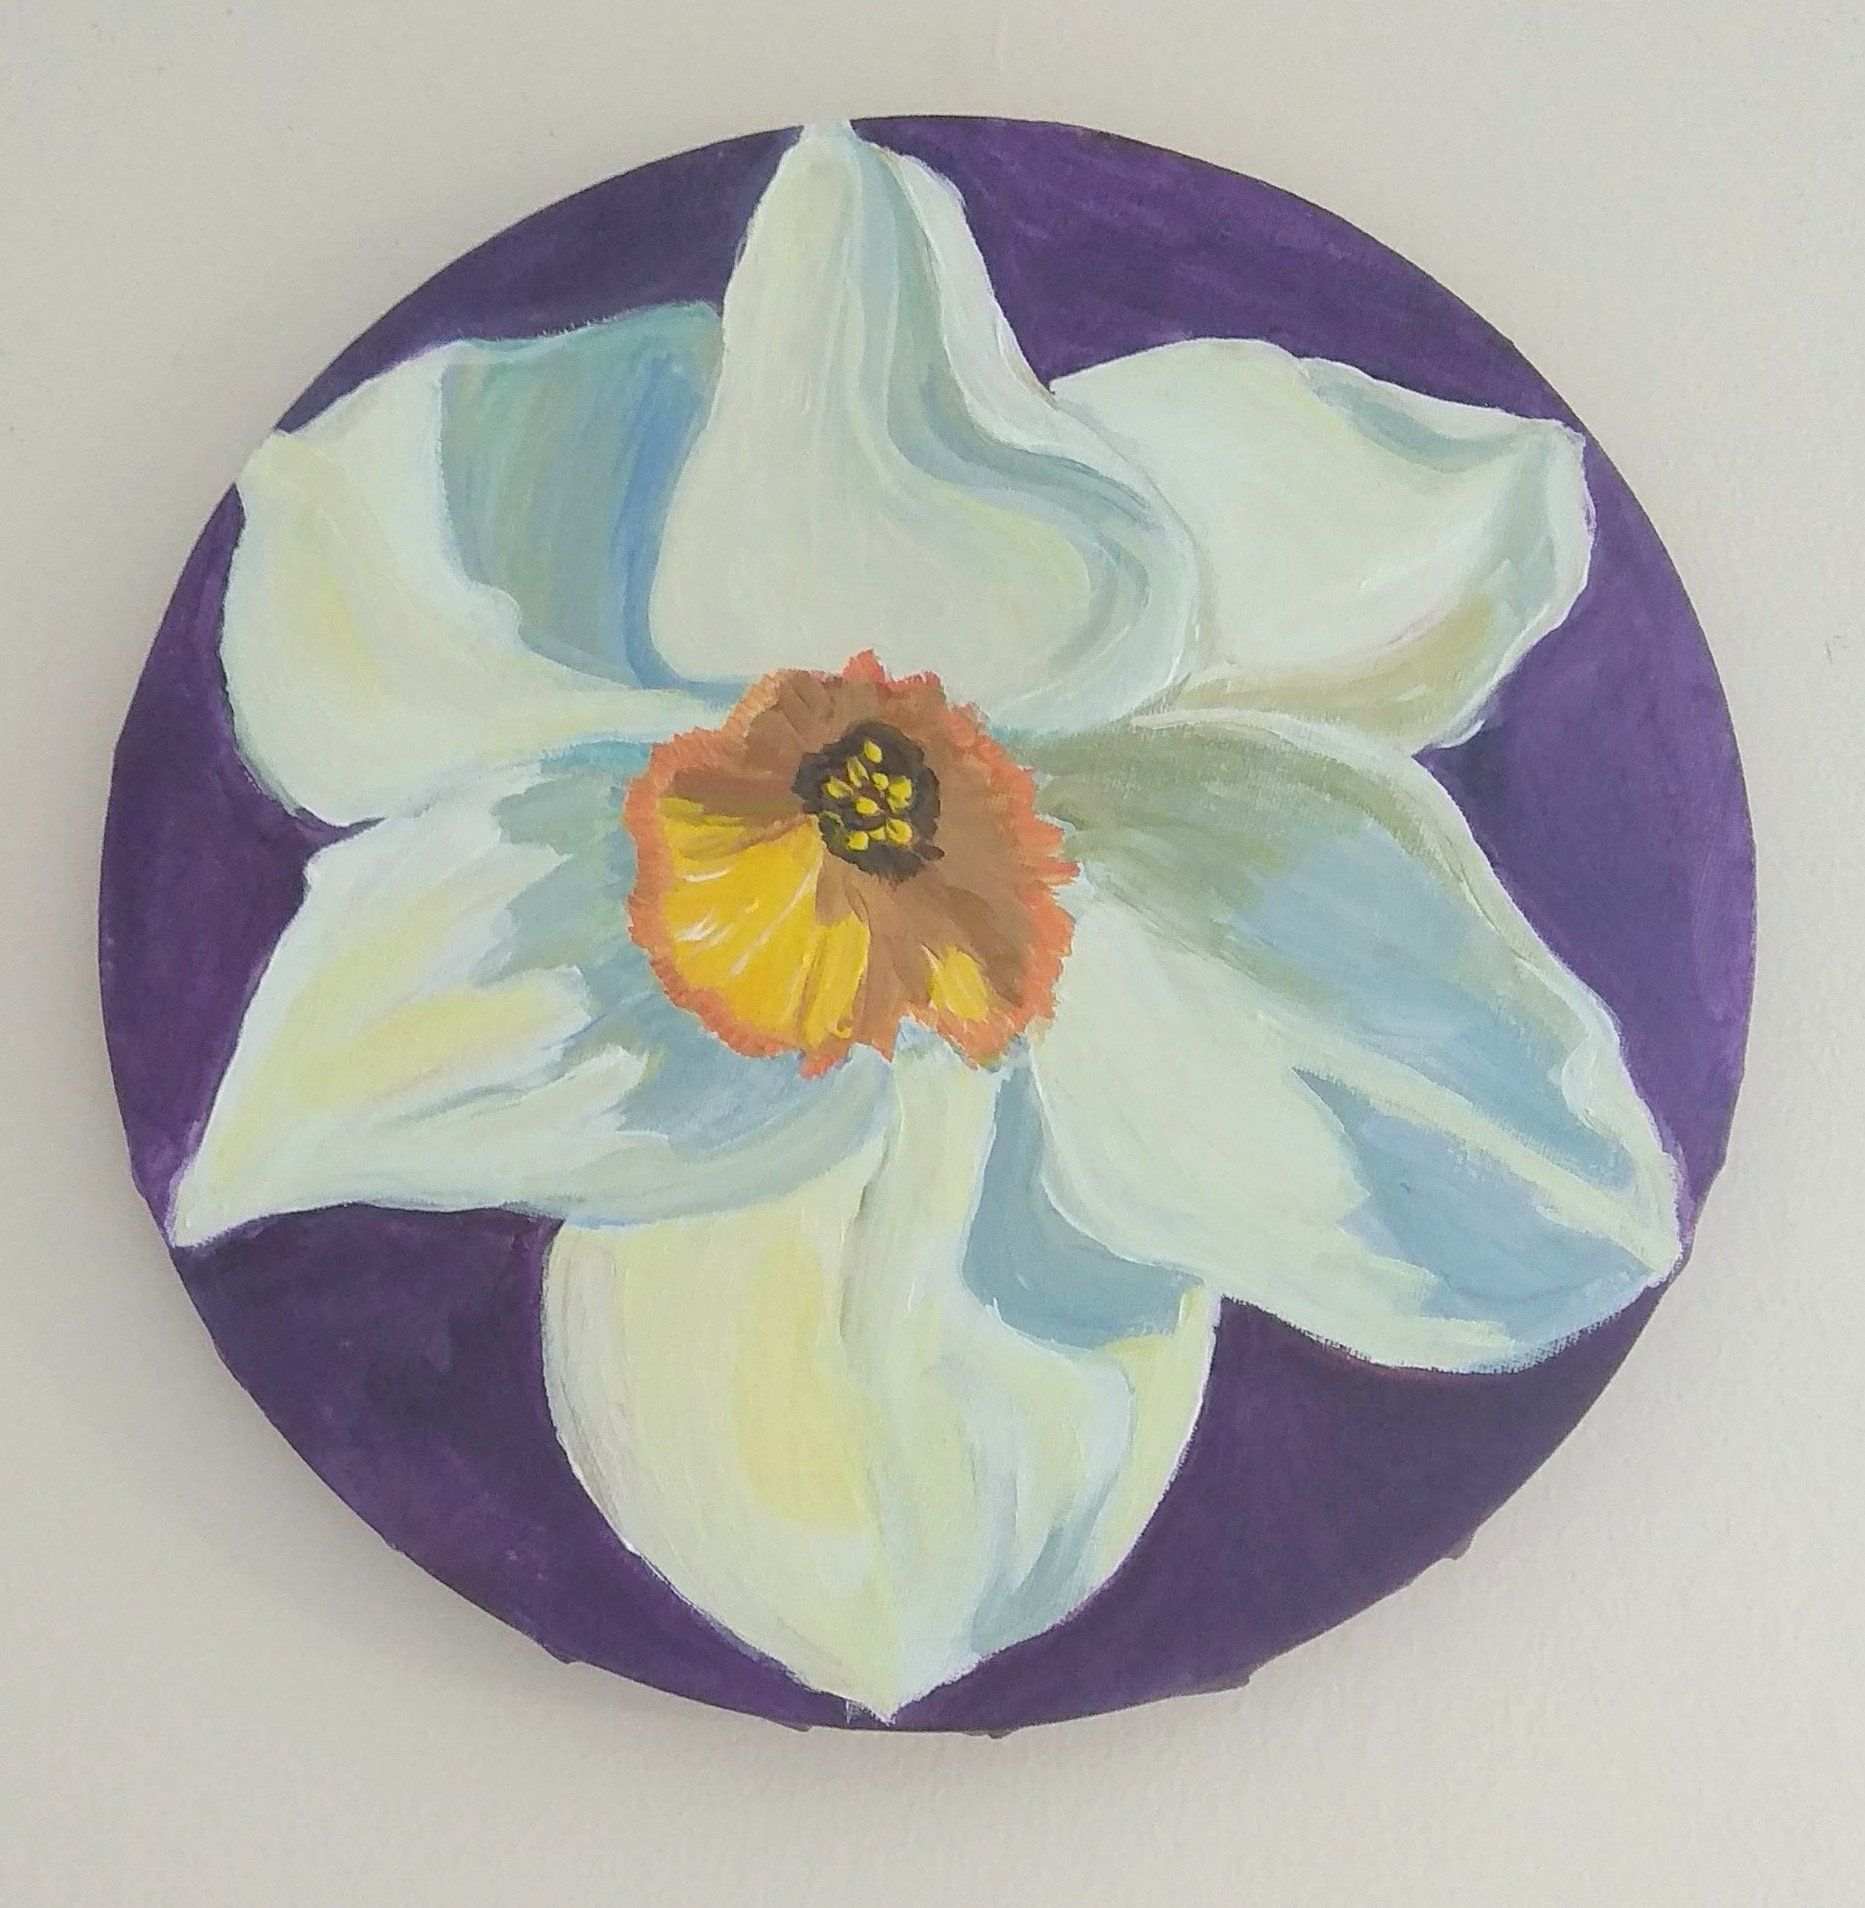 White Daffodil Painting Round Canvas Daffodil White Flower